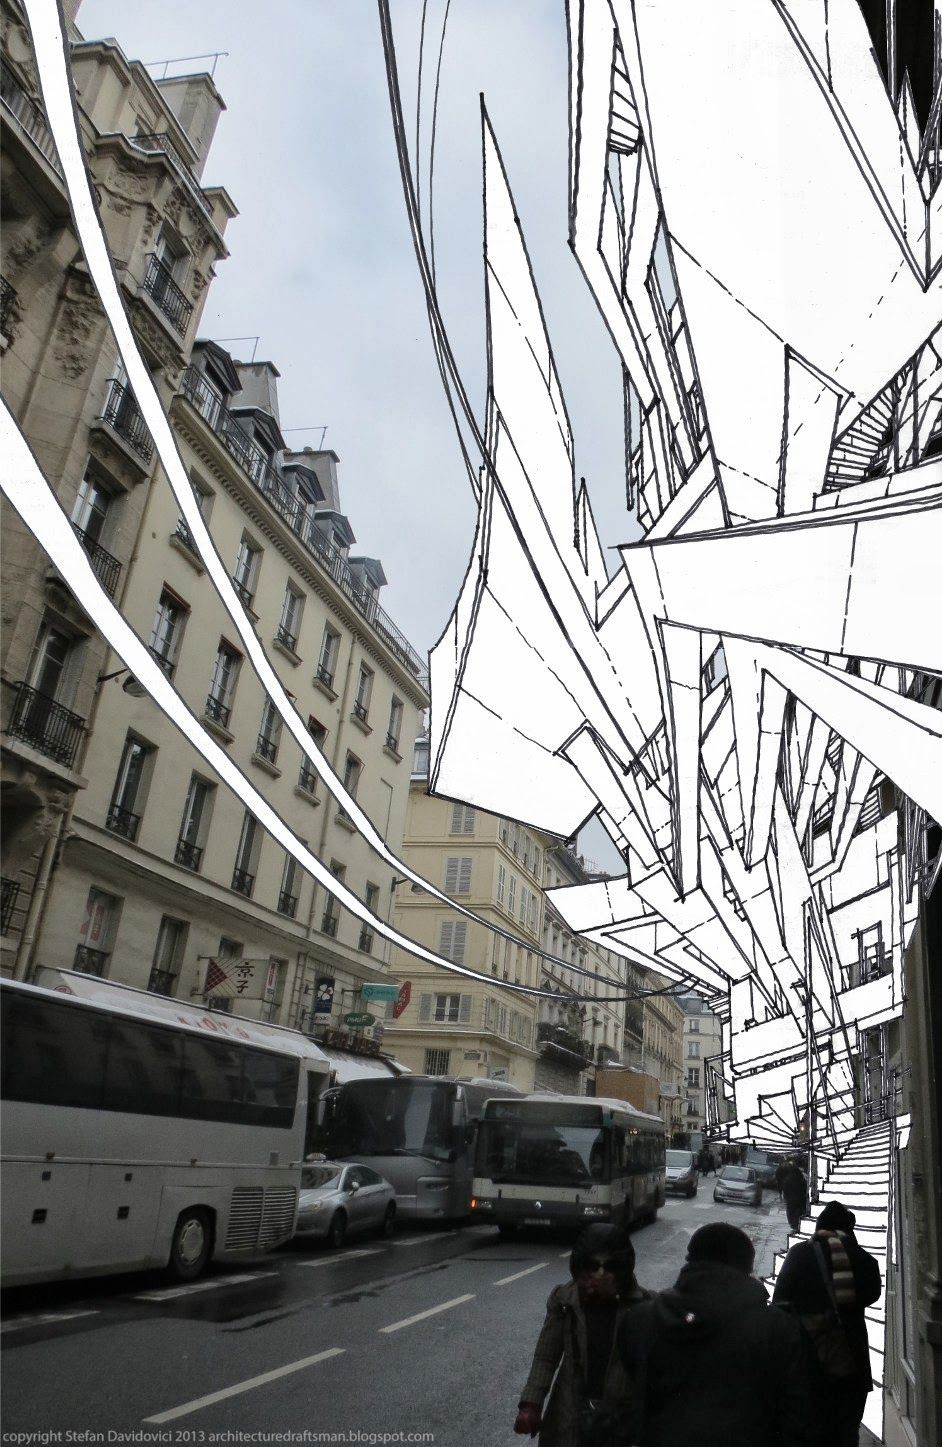 stefan_davidovici Paris - drawing and collage